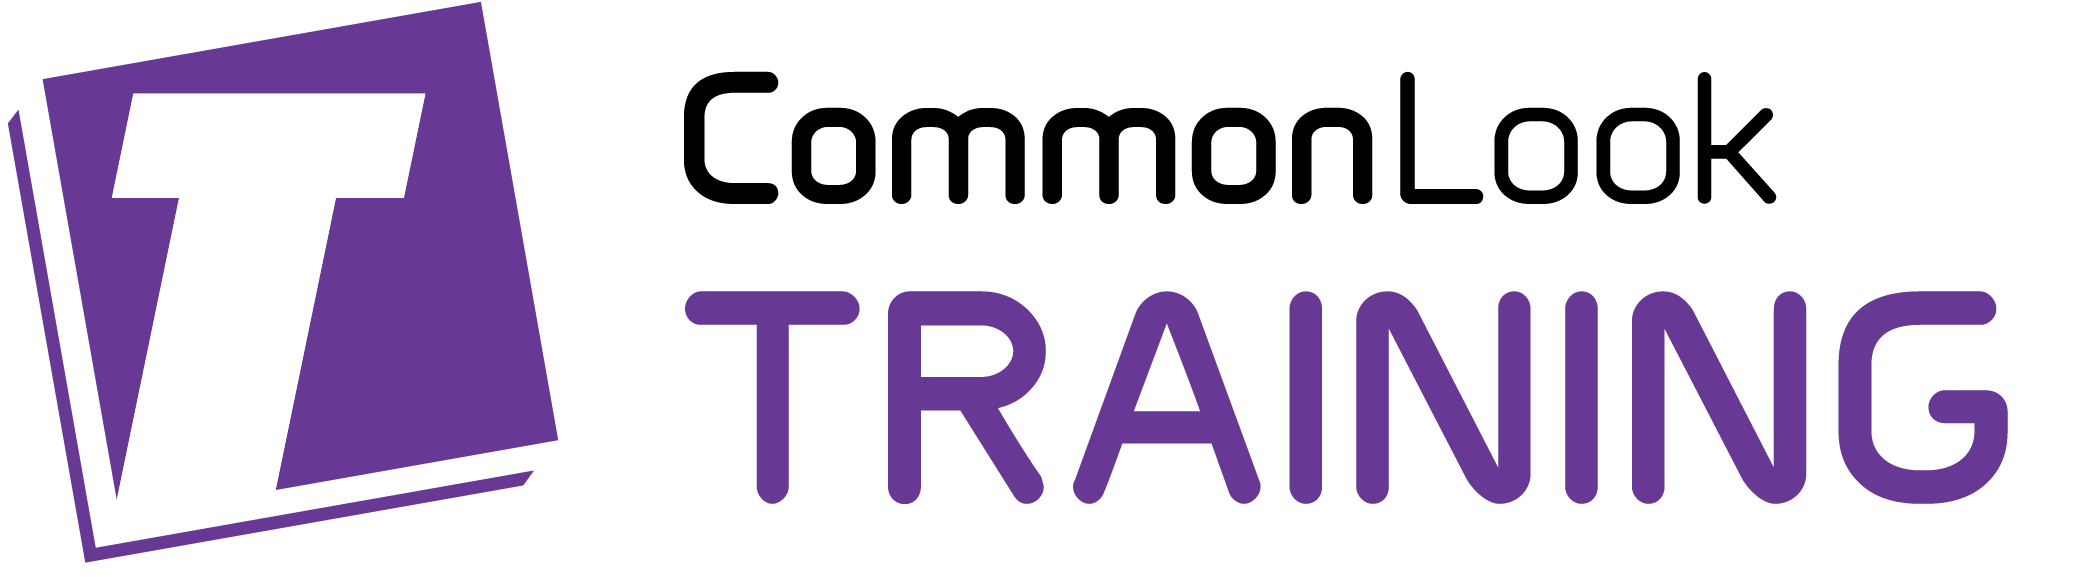 commonlook-training-logo